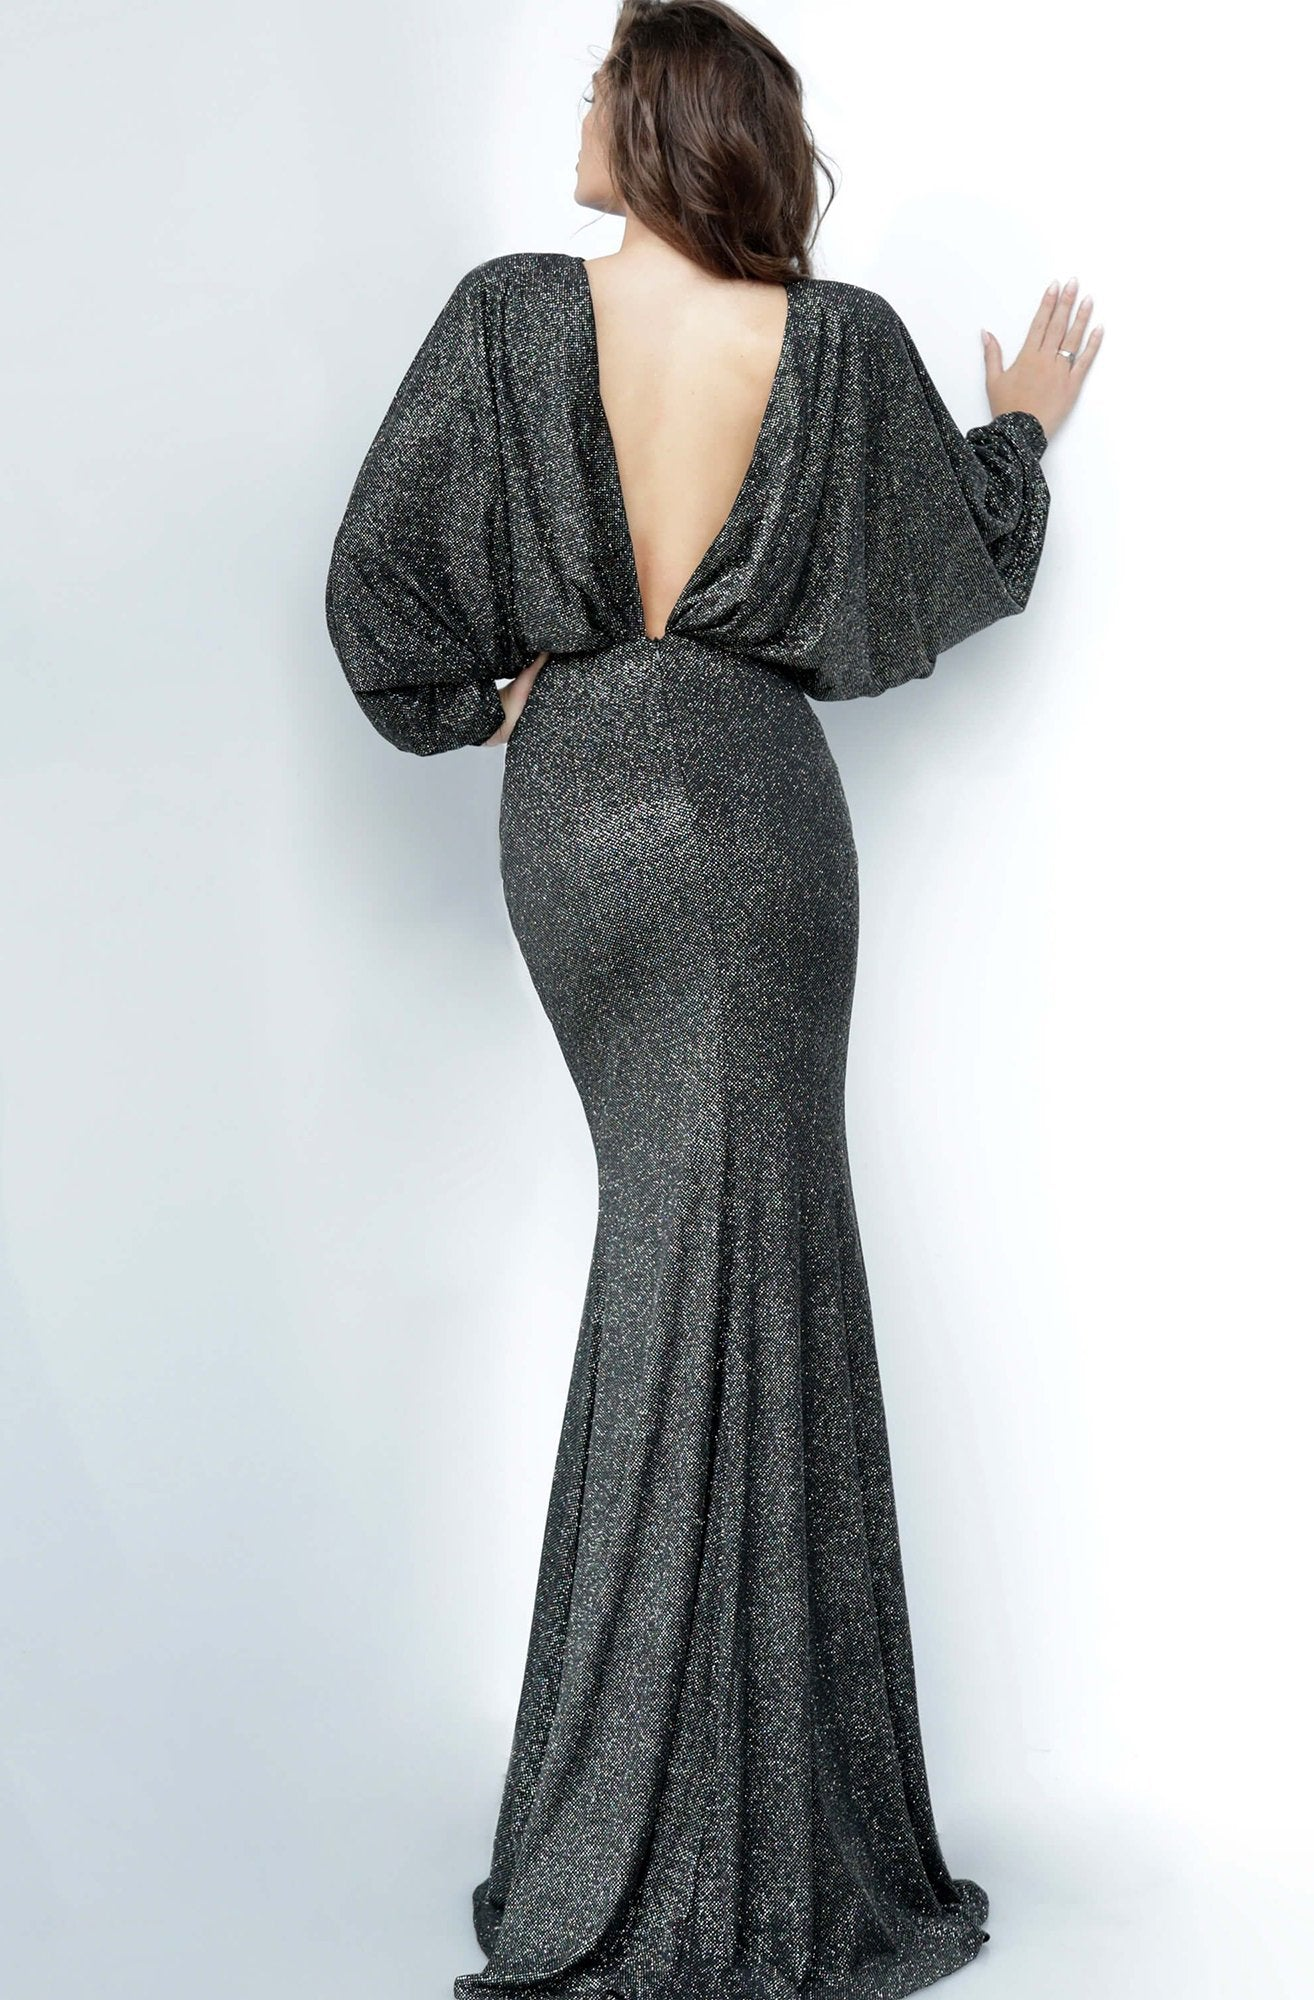 Jovani - 1748 Bateau Long Sleeves Sheath Dress In Black and Multi-Color